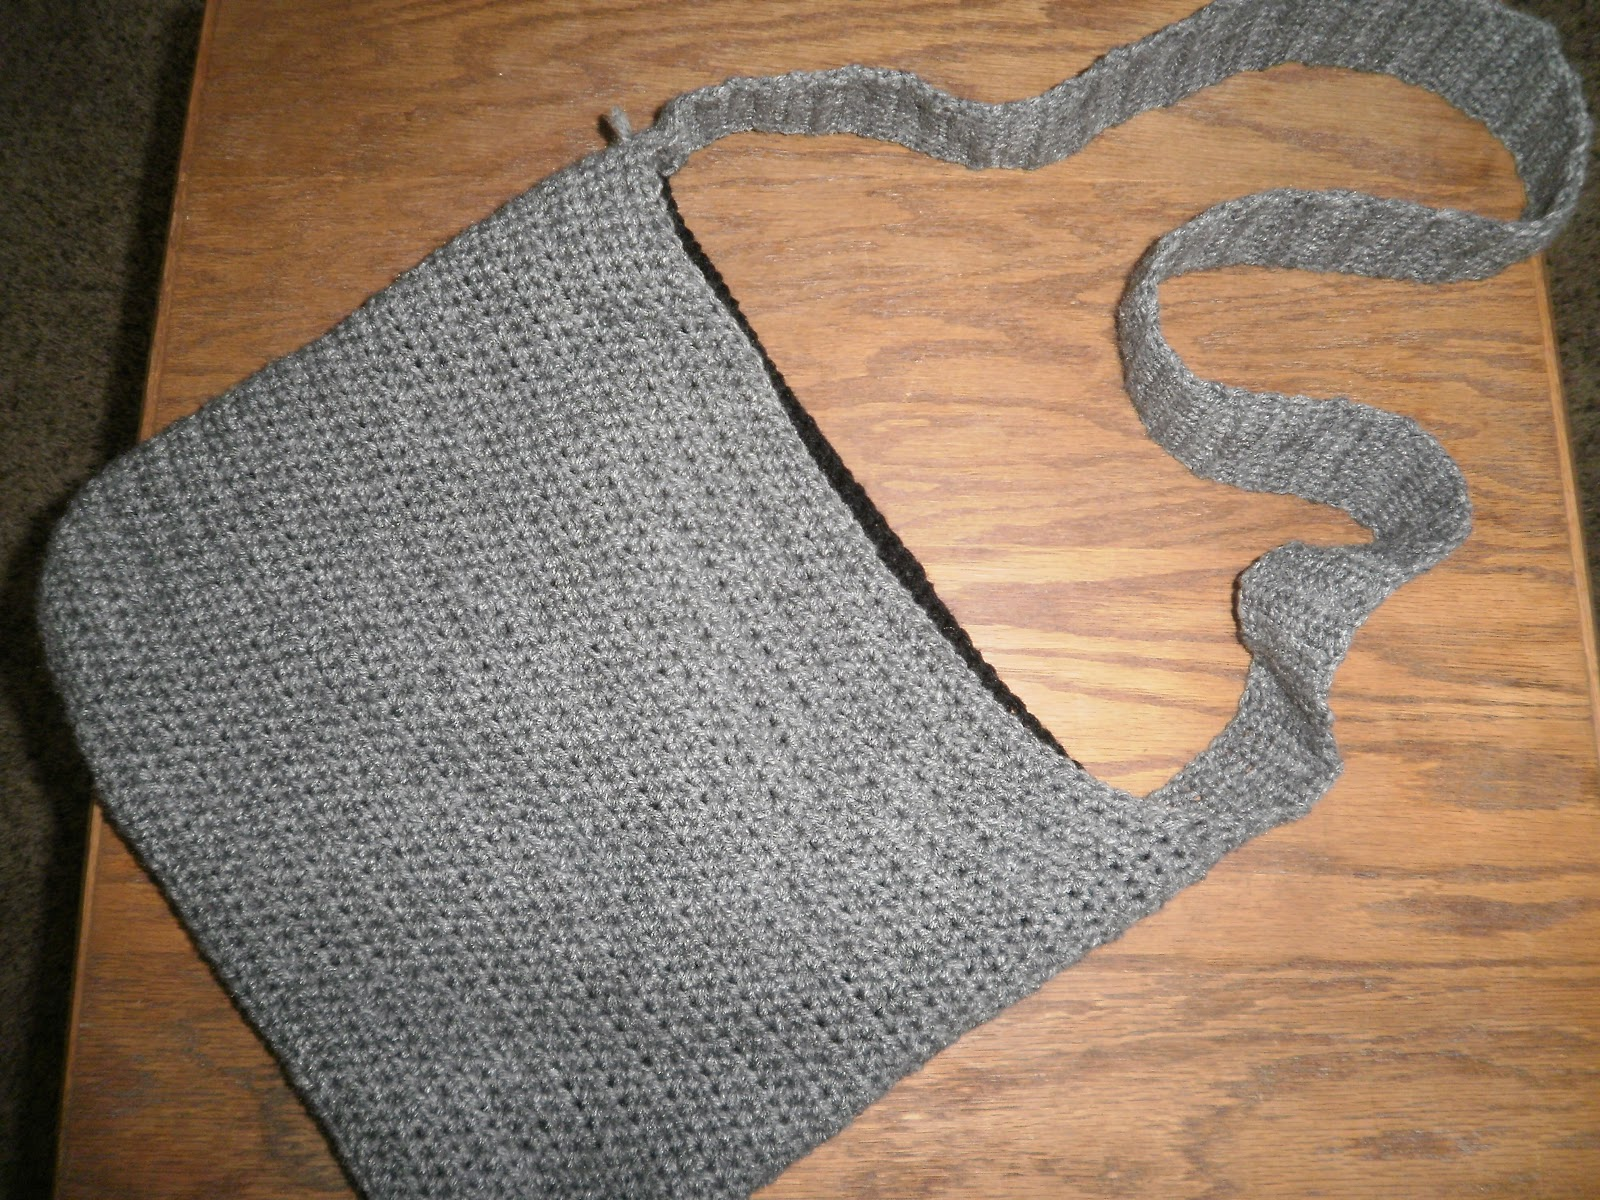 Crochet Shoulder Bag Pattern Free : Sweetness: Crochet Satchel/Over the Shoulder Bag